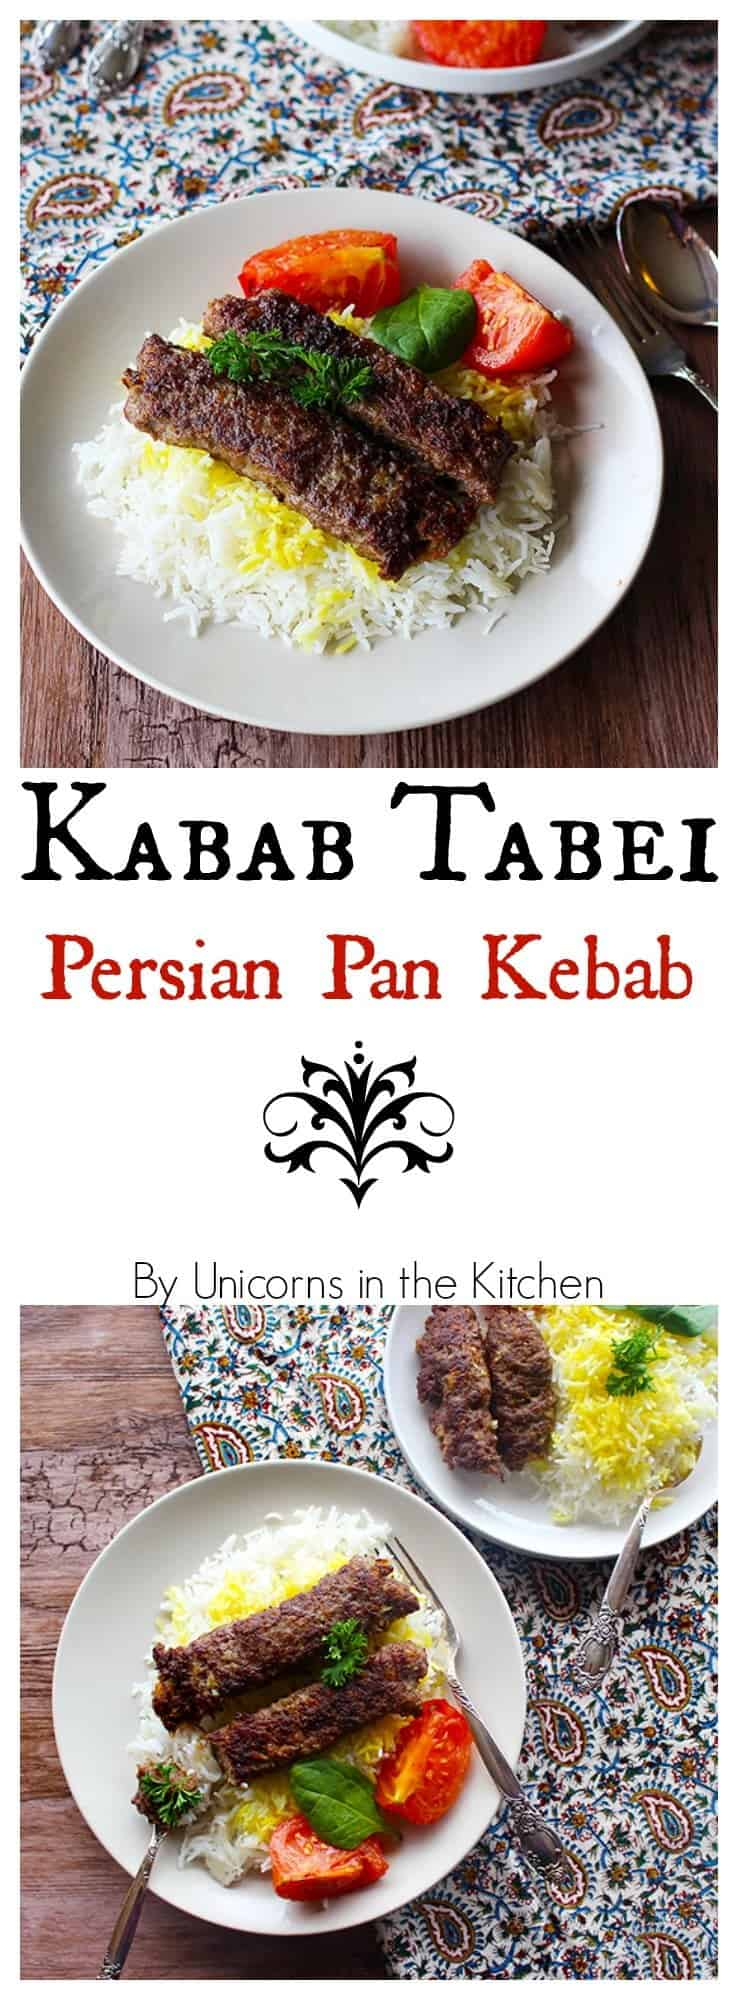 Kabab Tabei is a delicious dish that you can make if you like to have kebabs but you don't want to use a grill or you don't have one. It's simple and can be ready in an hour with a handful of ingredients!